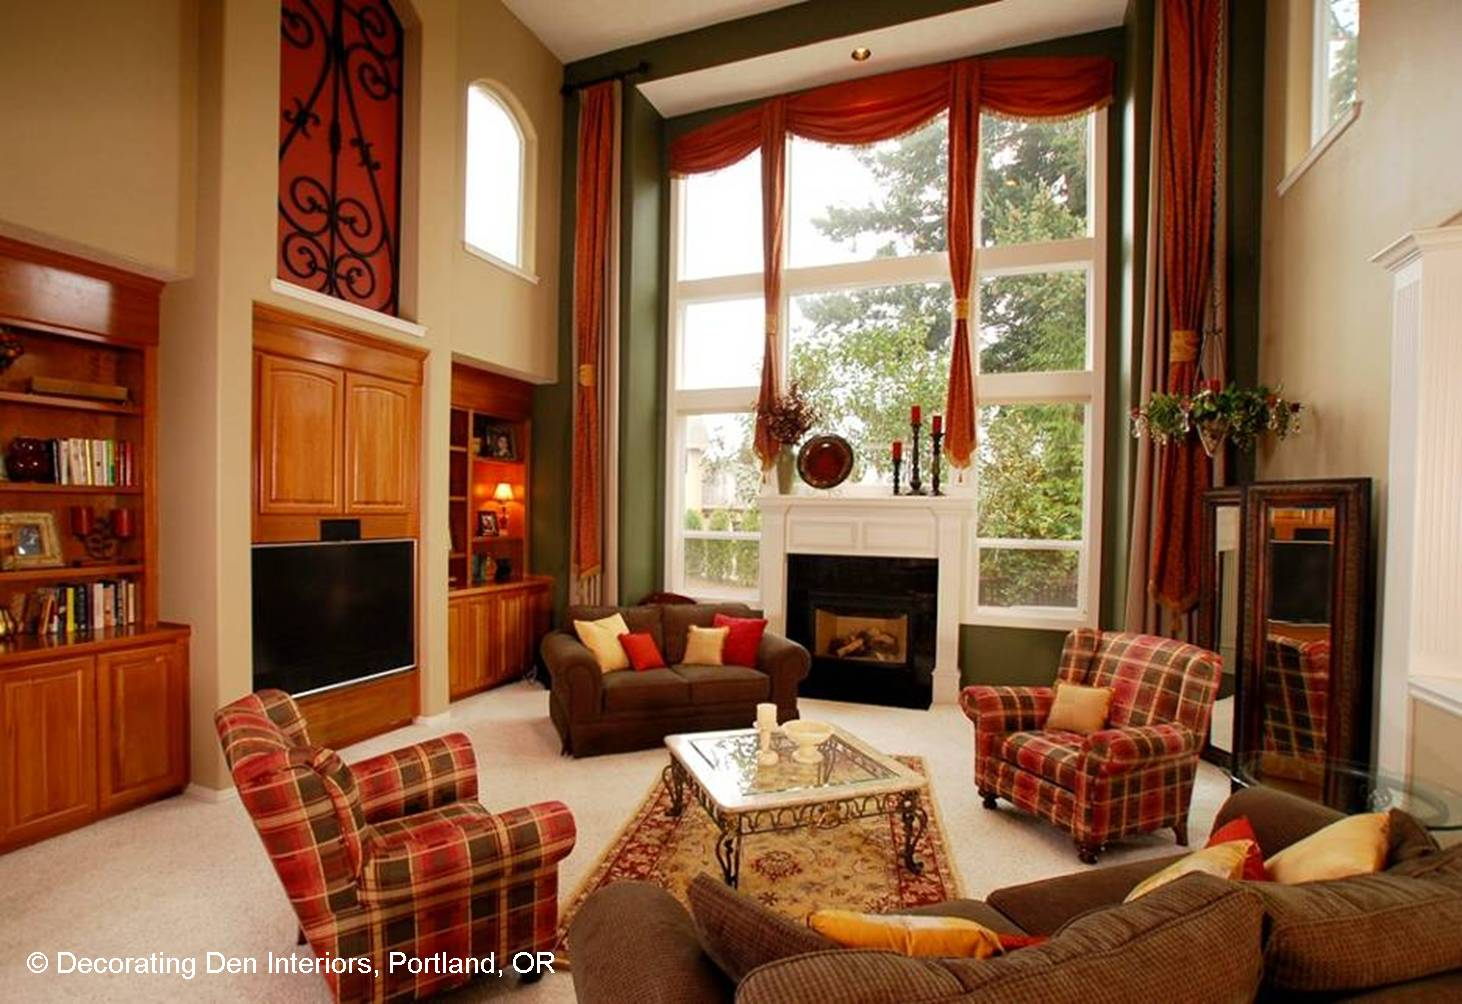 Focus on the fireplace devine decorating results for for Family room decorating fireplace